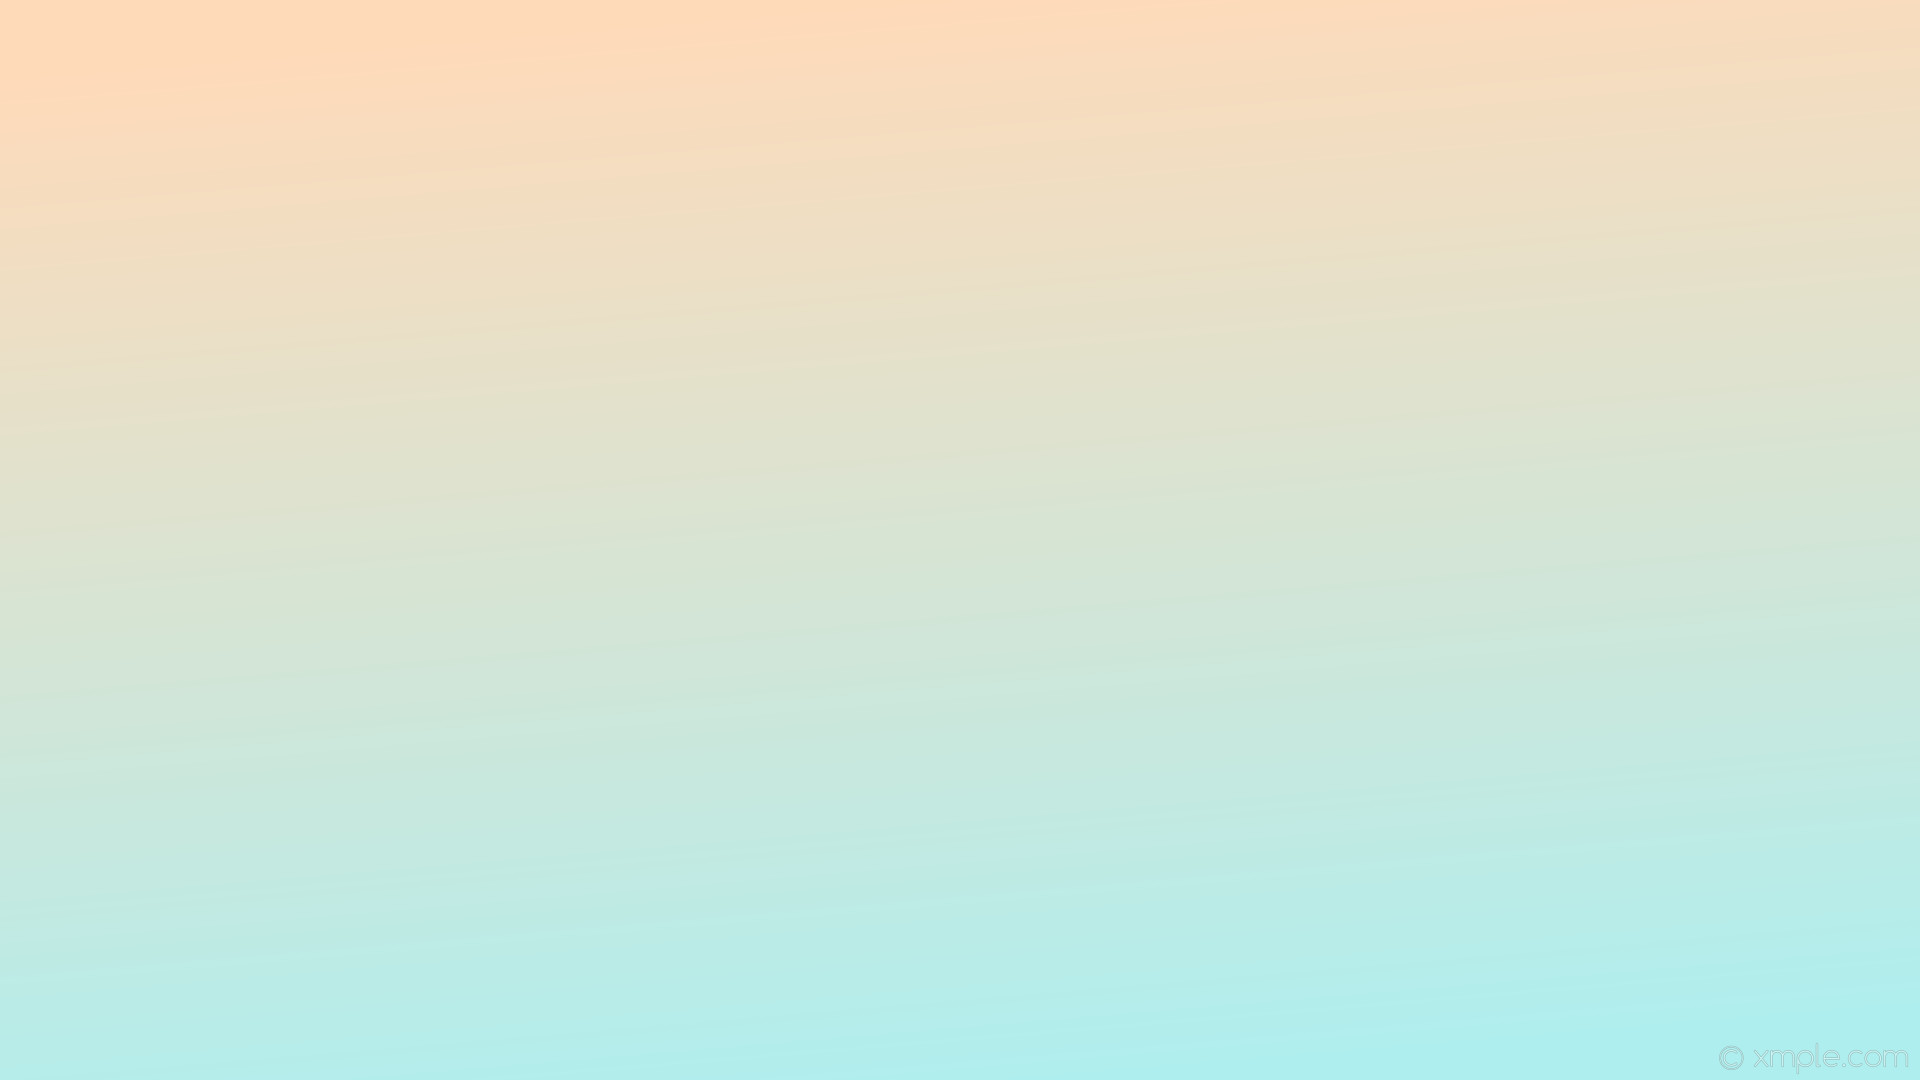 wallpaper linear yellow gradient blue peach puff pale turquoise #ffdab9  #afeeee 105°